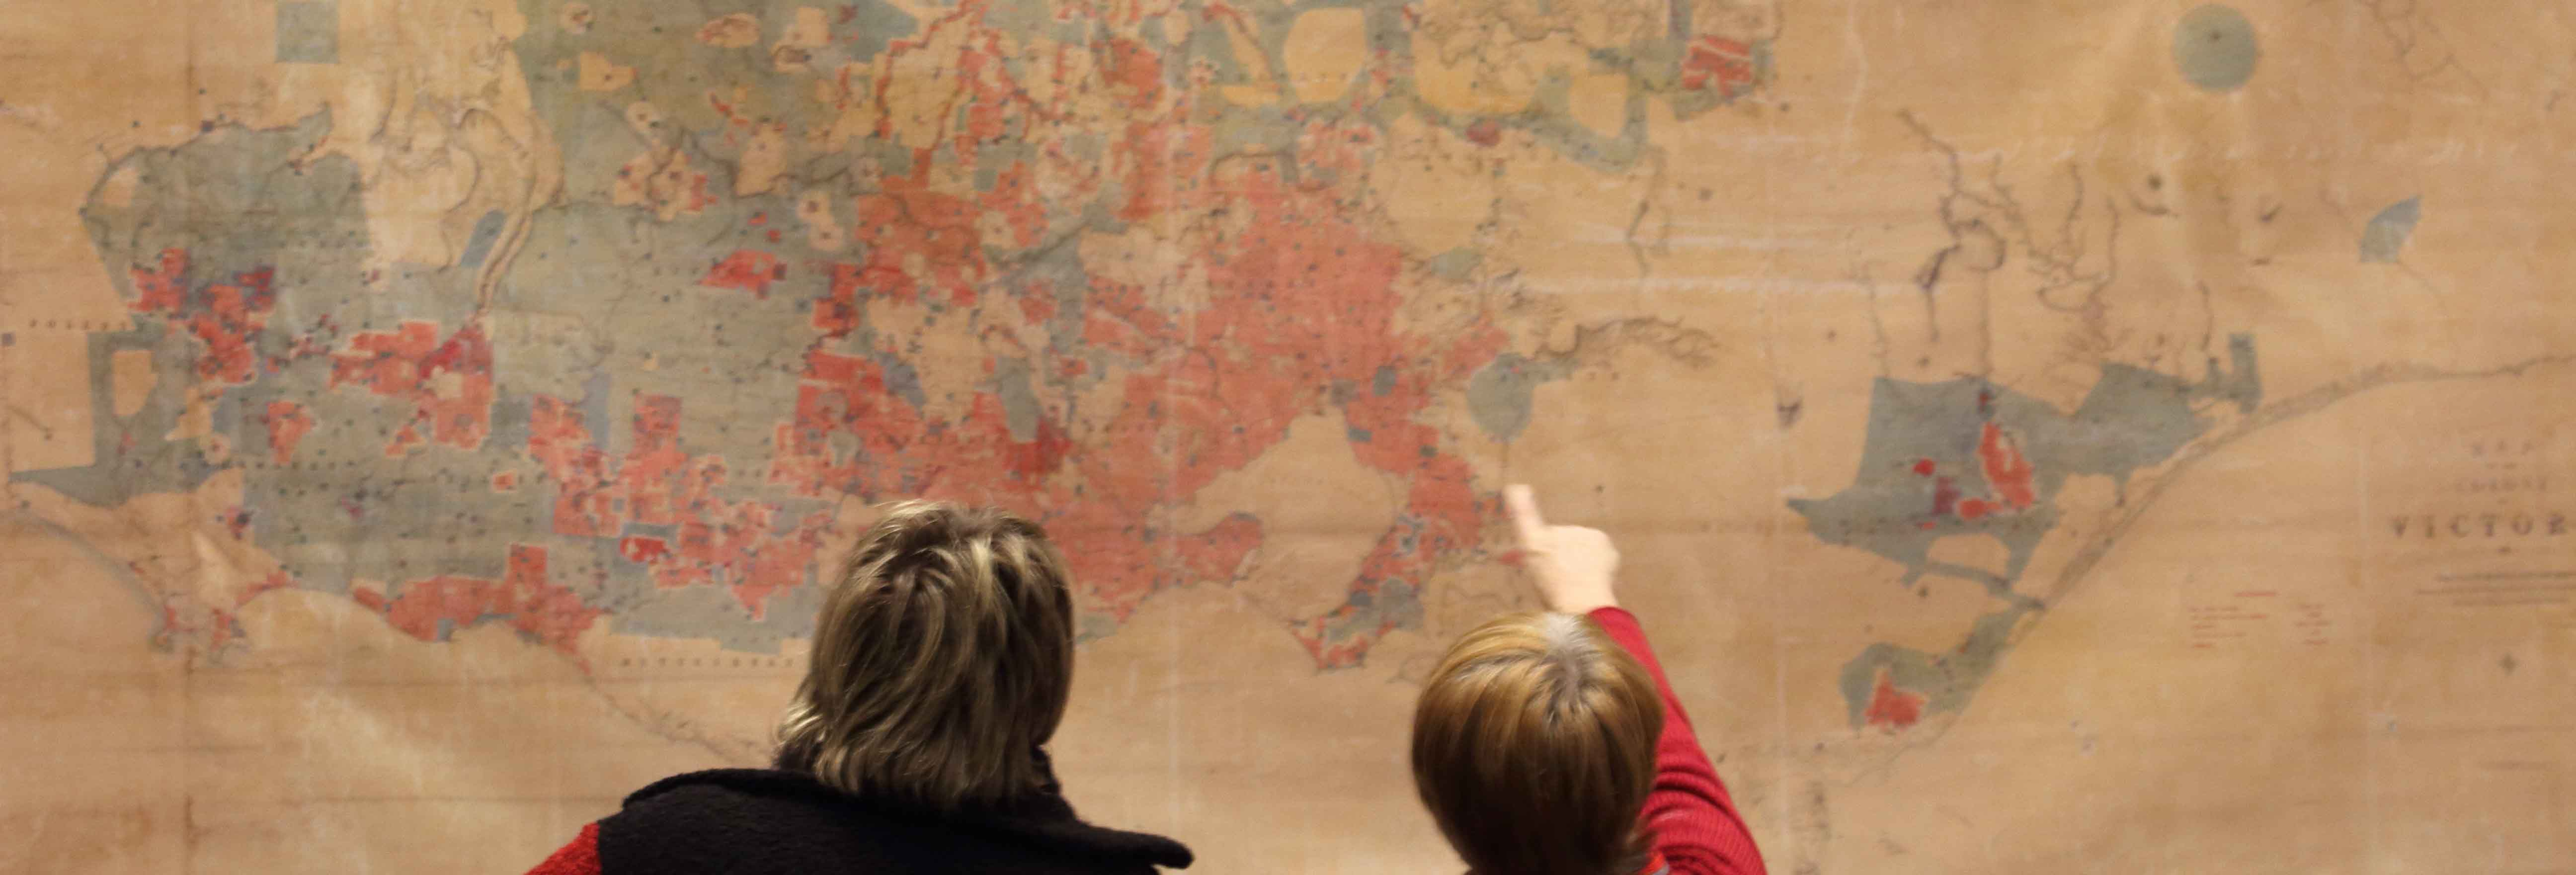 People looking at a wall-hanging map